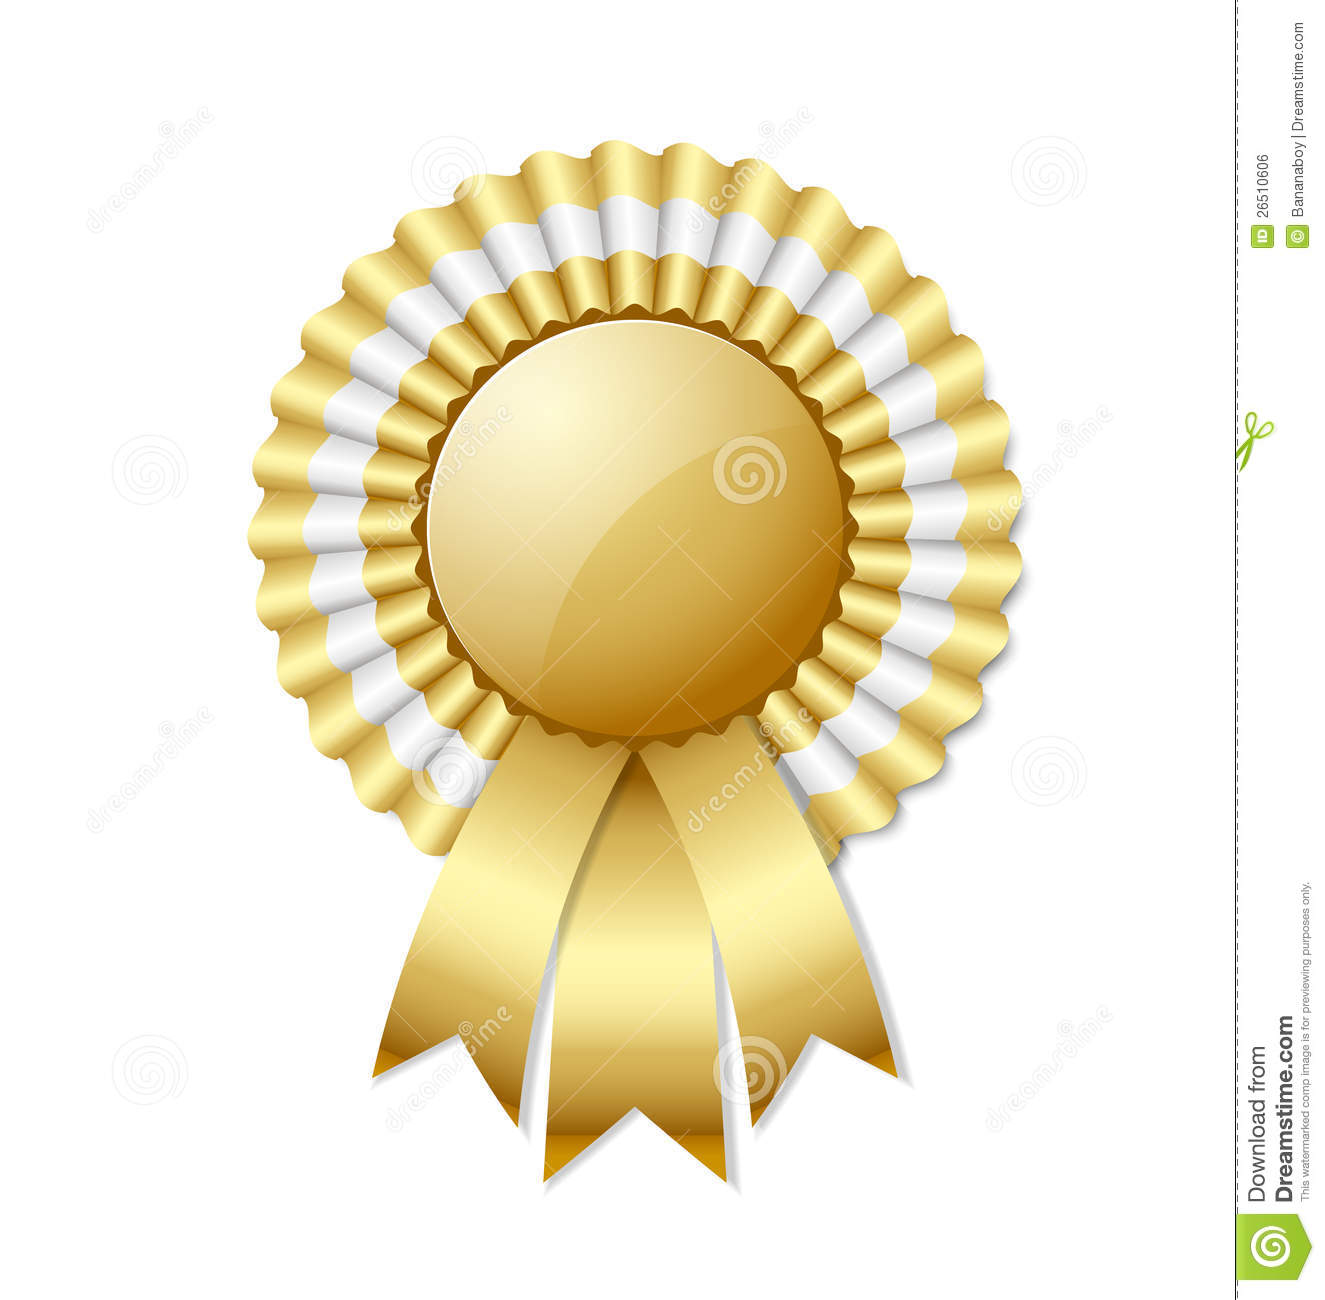 Golden Rosette Royalty Free Stock Image - Image: 26510606